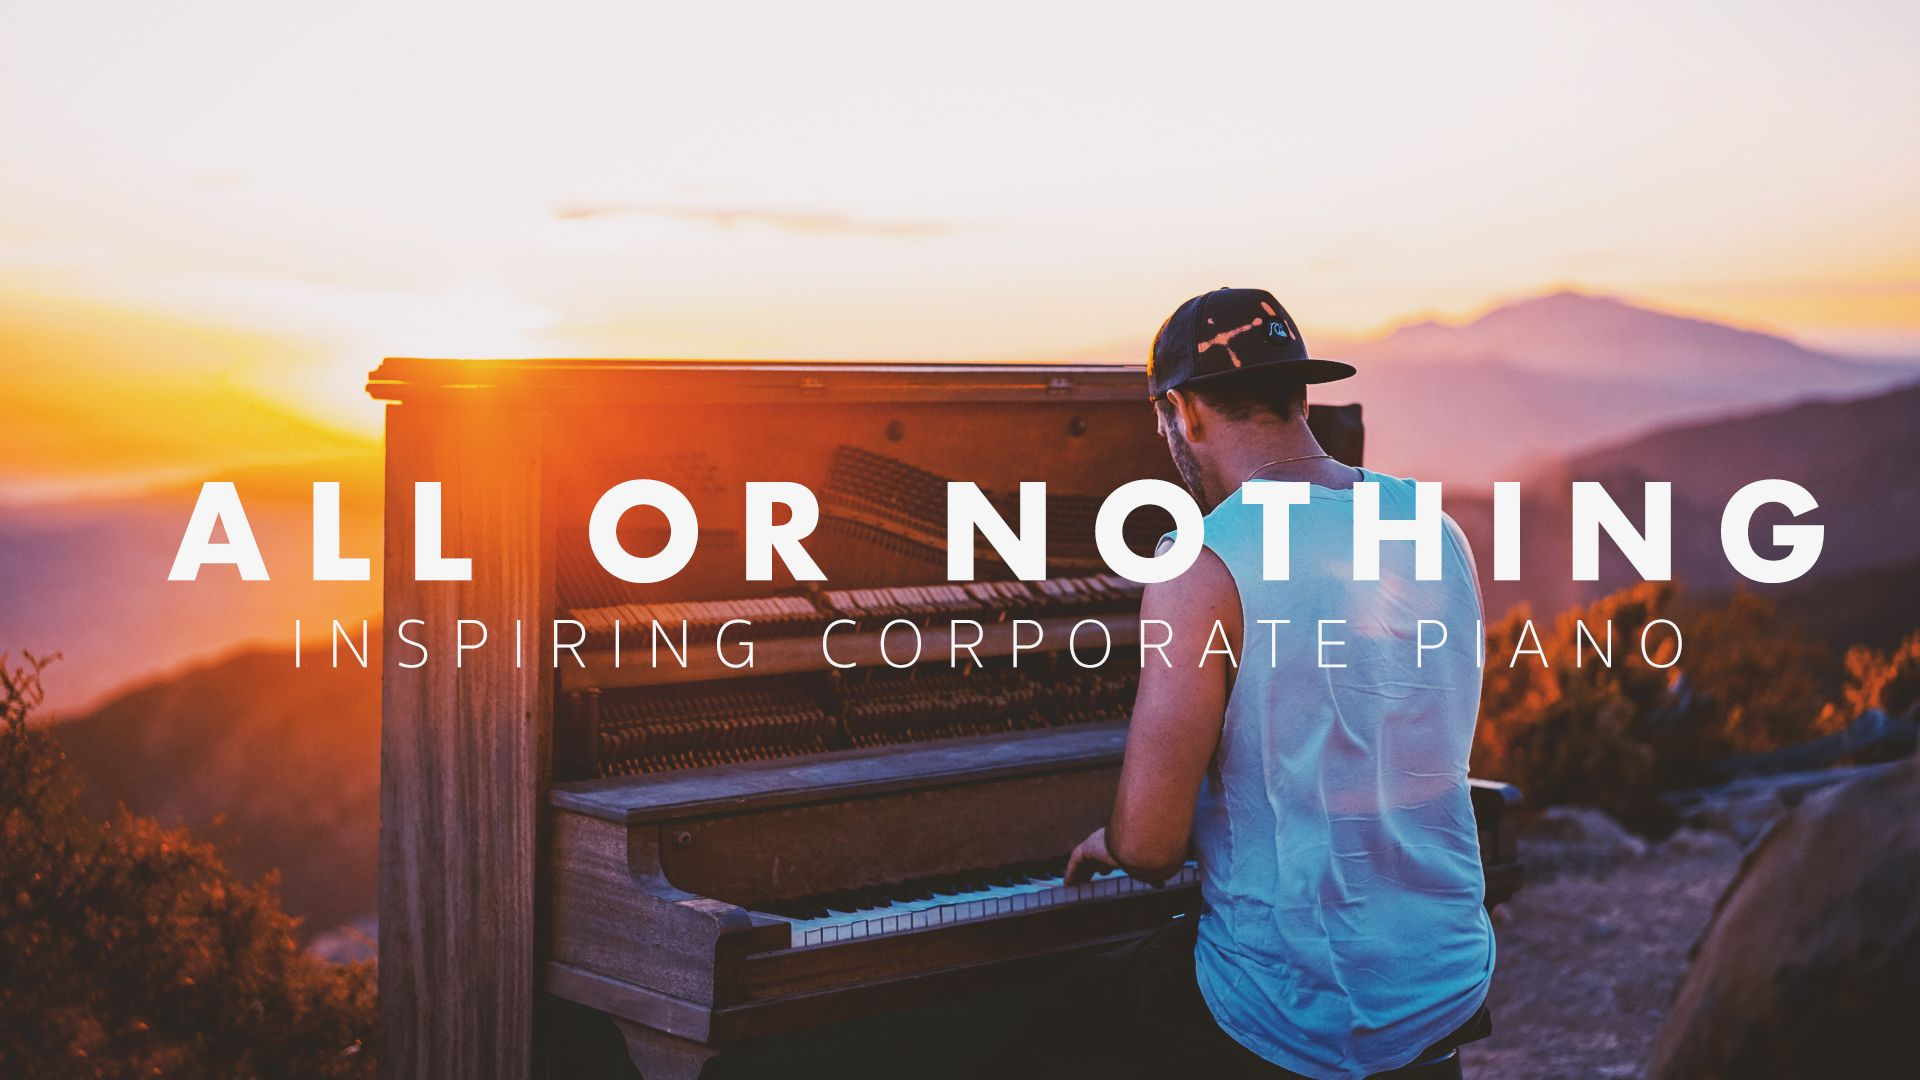 Inspiring Corporate Piano Uplifting - 1